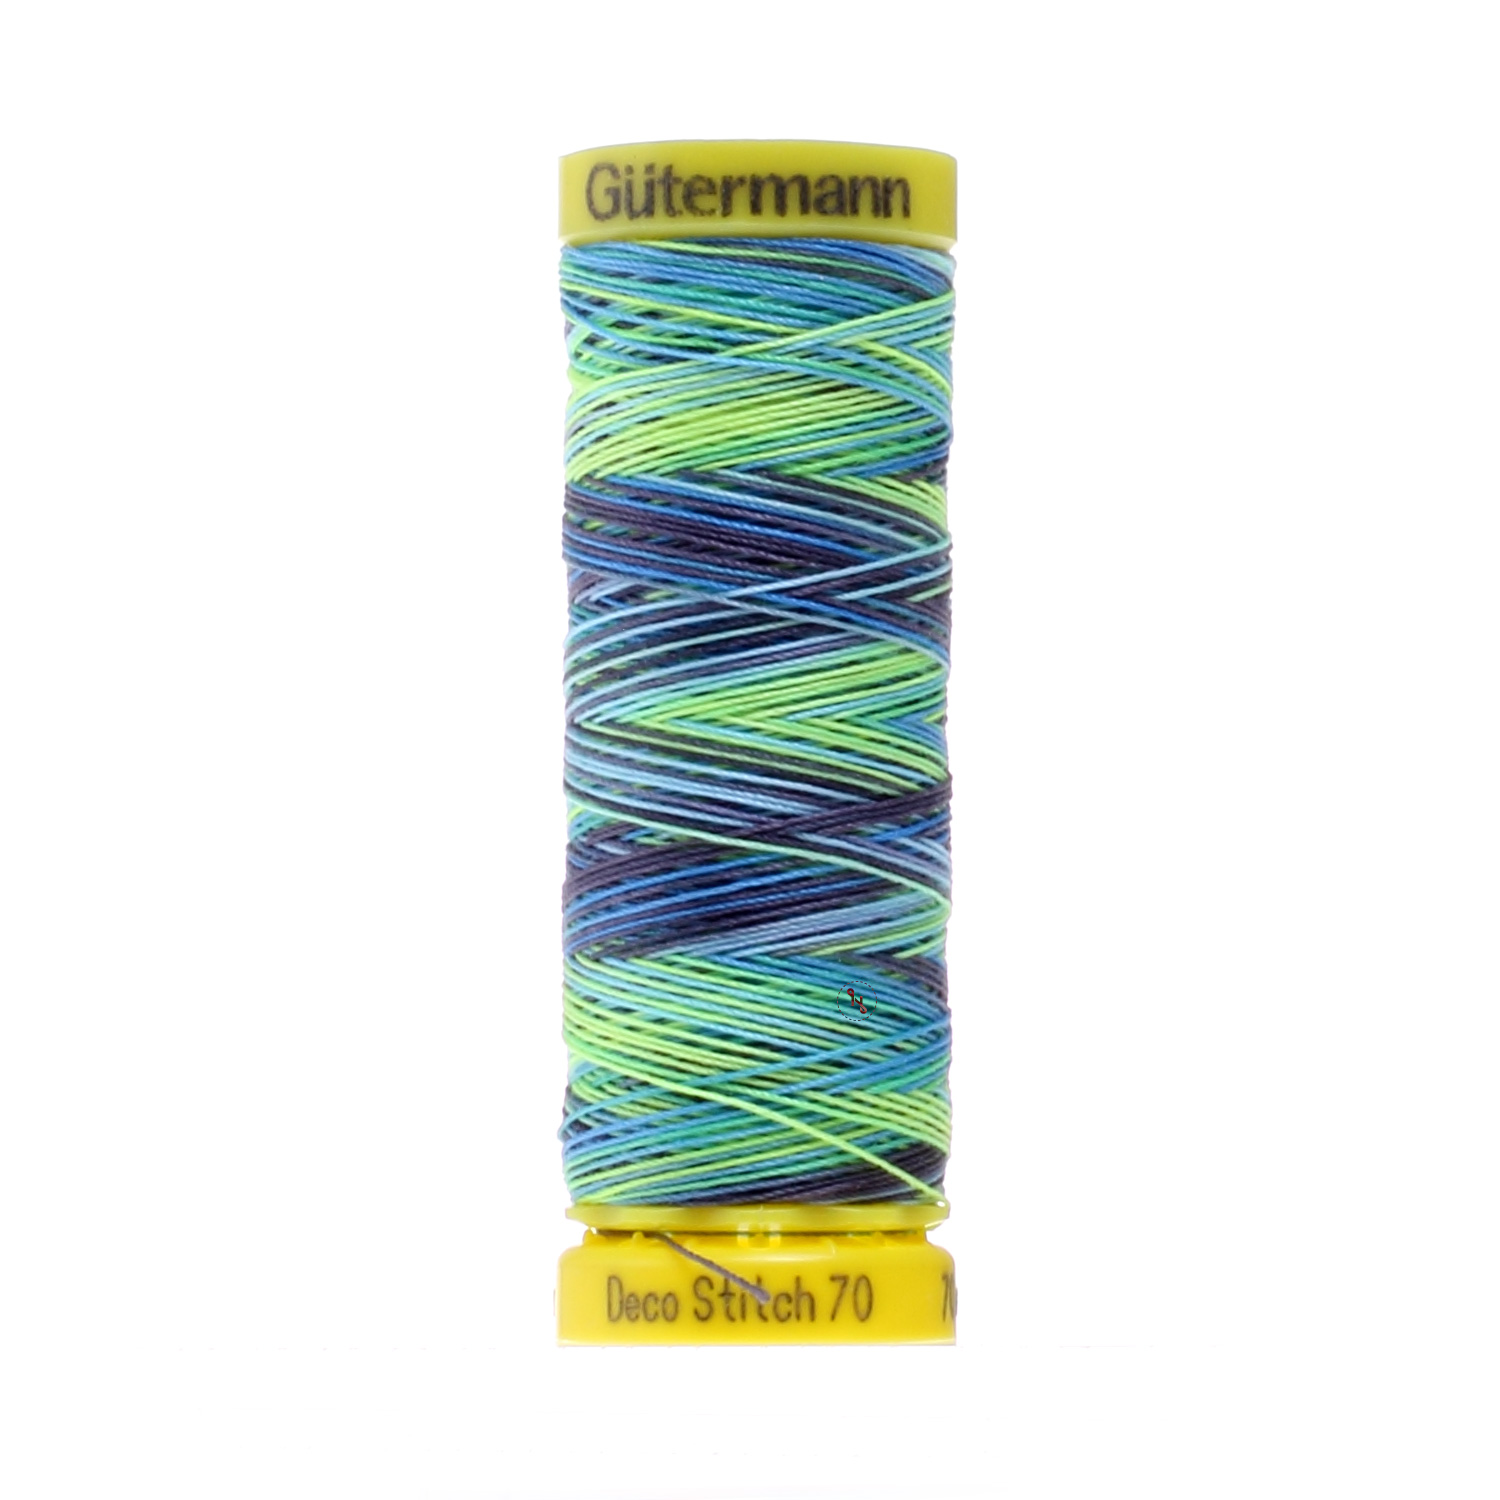 GÜTERMANN Deco Stitch No. 70 70 m Multicolour